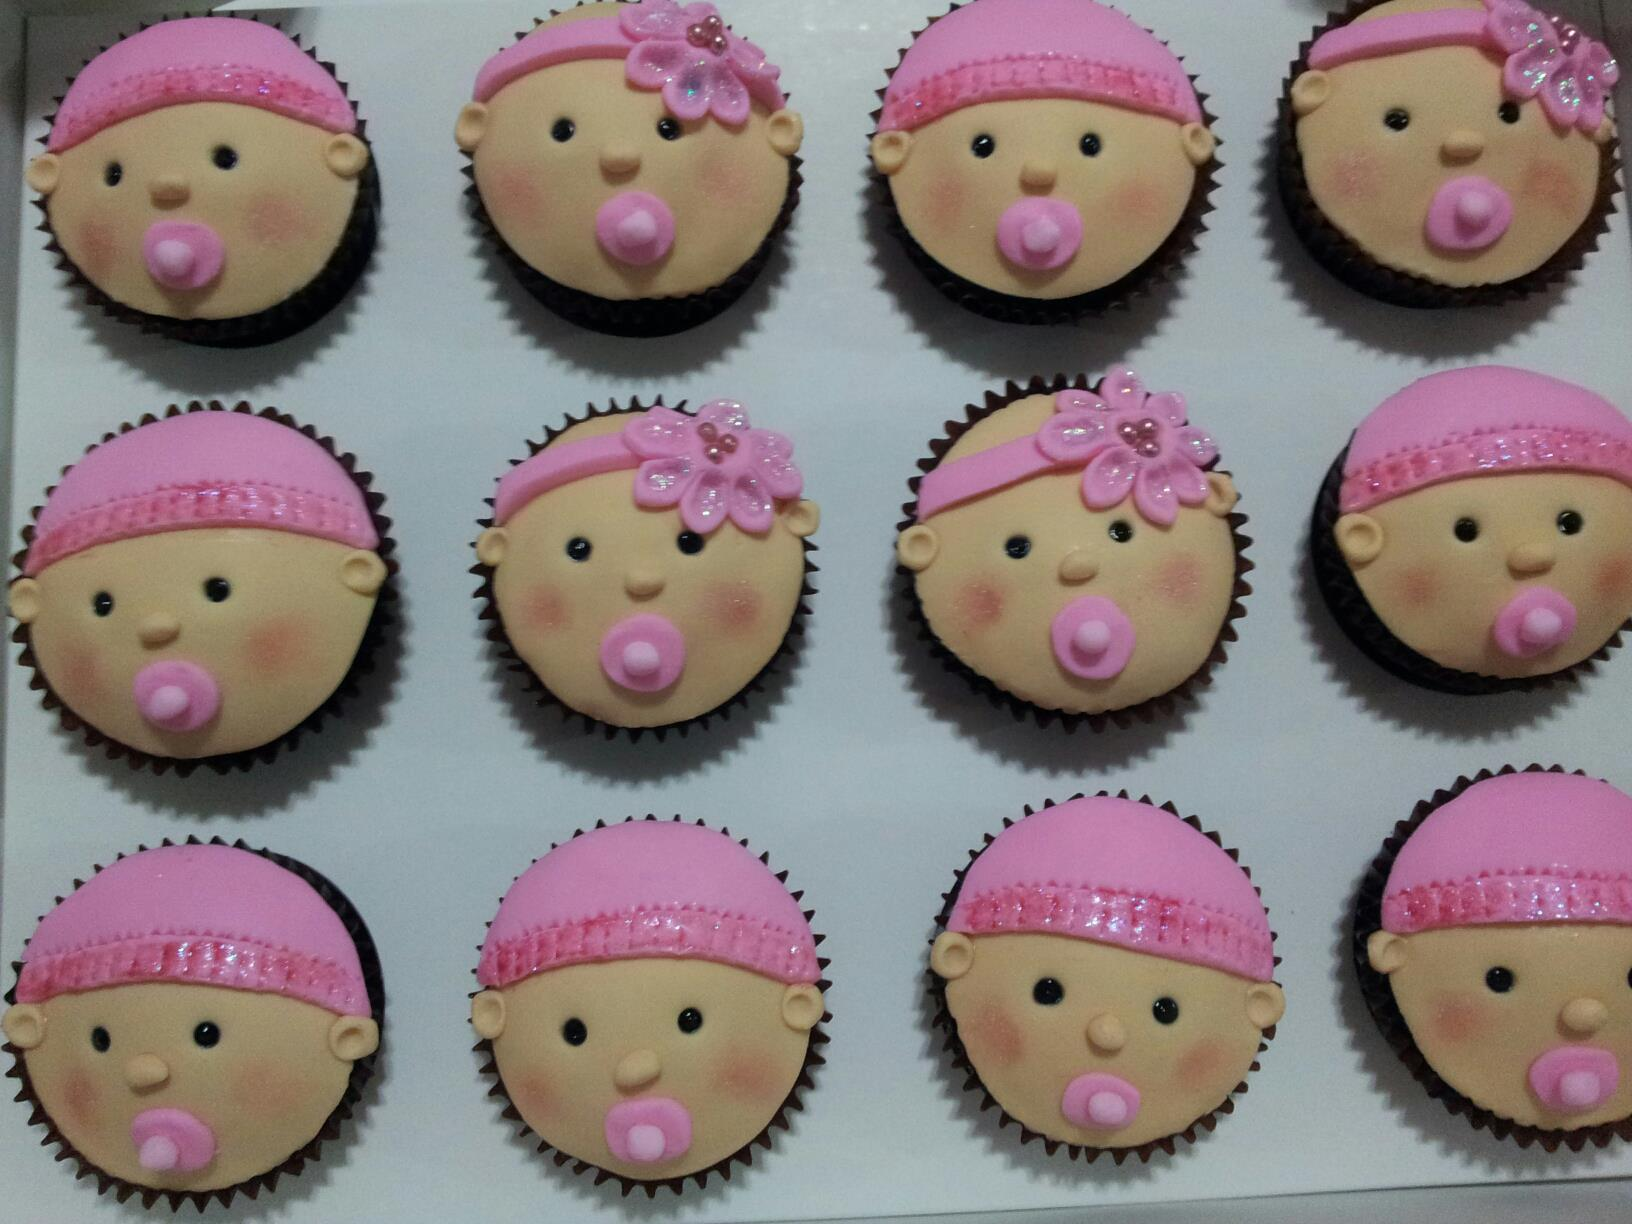 Baby Shower Cakes Decorations ~ Cute baby shower cupcakes photo girl baby shower cupcake